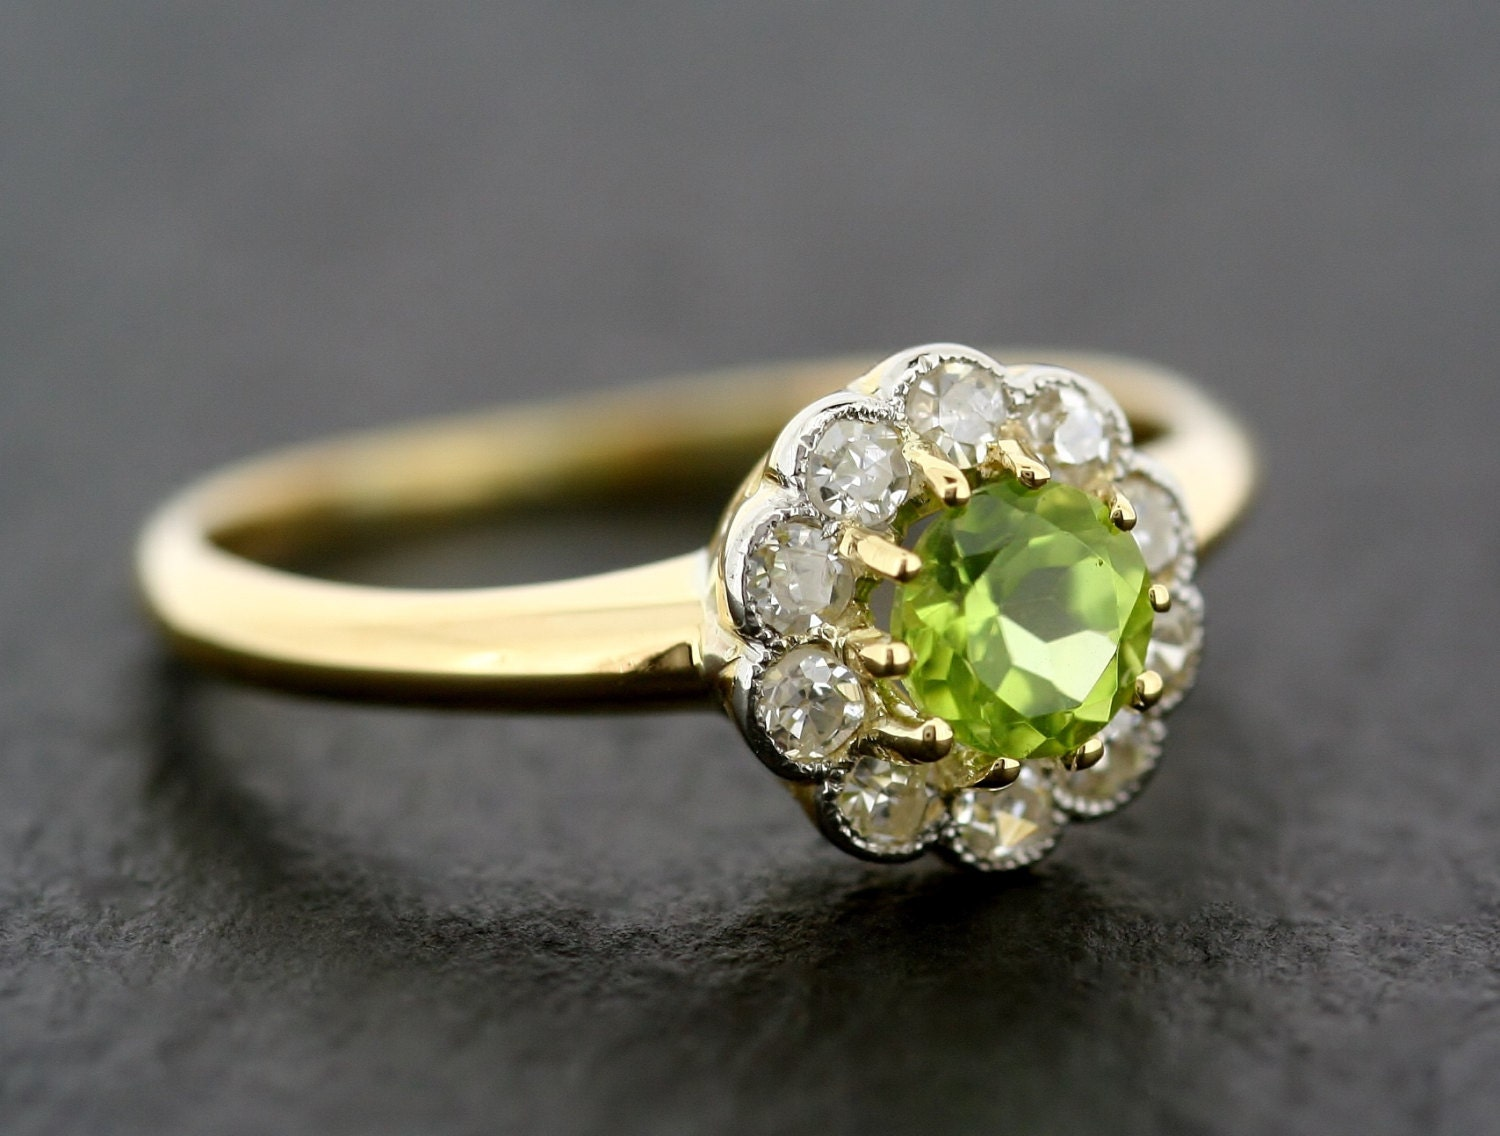 antique engagement ring vintage peridot by alistirwoodtait